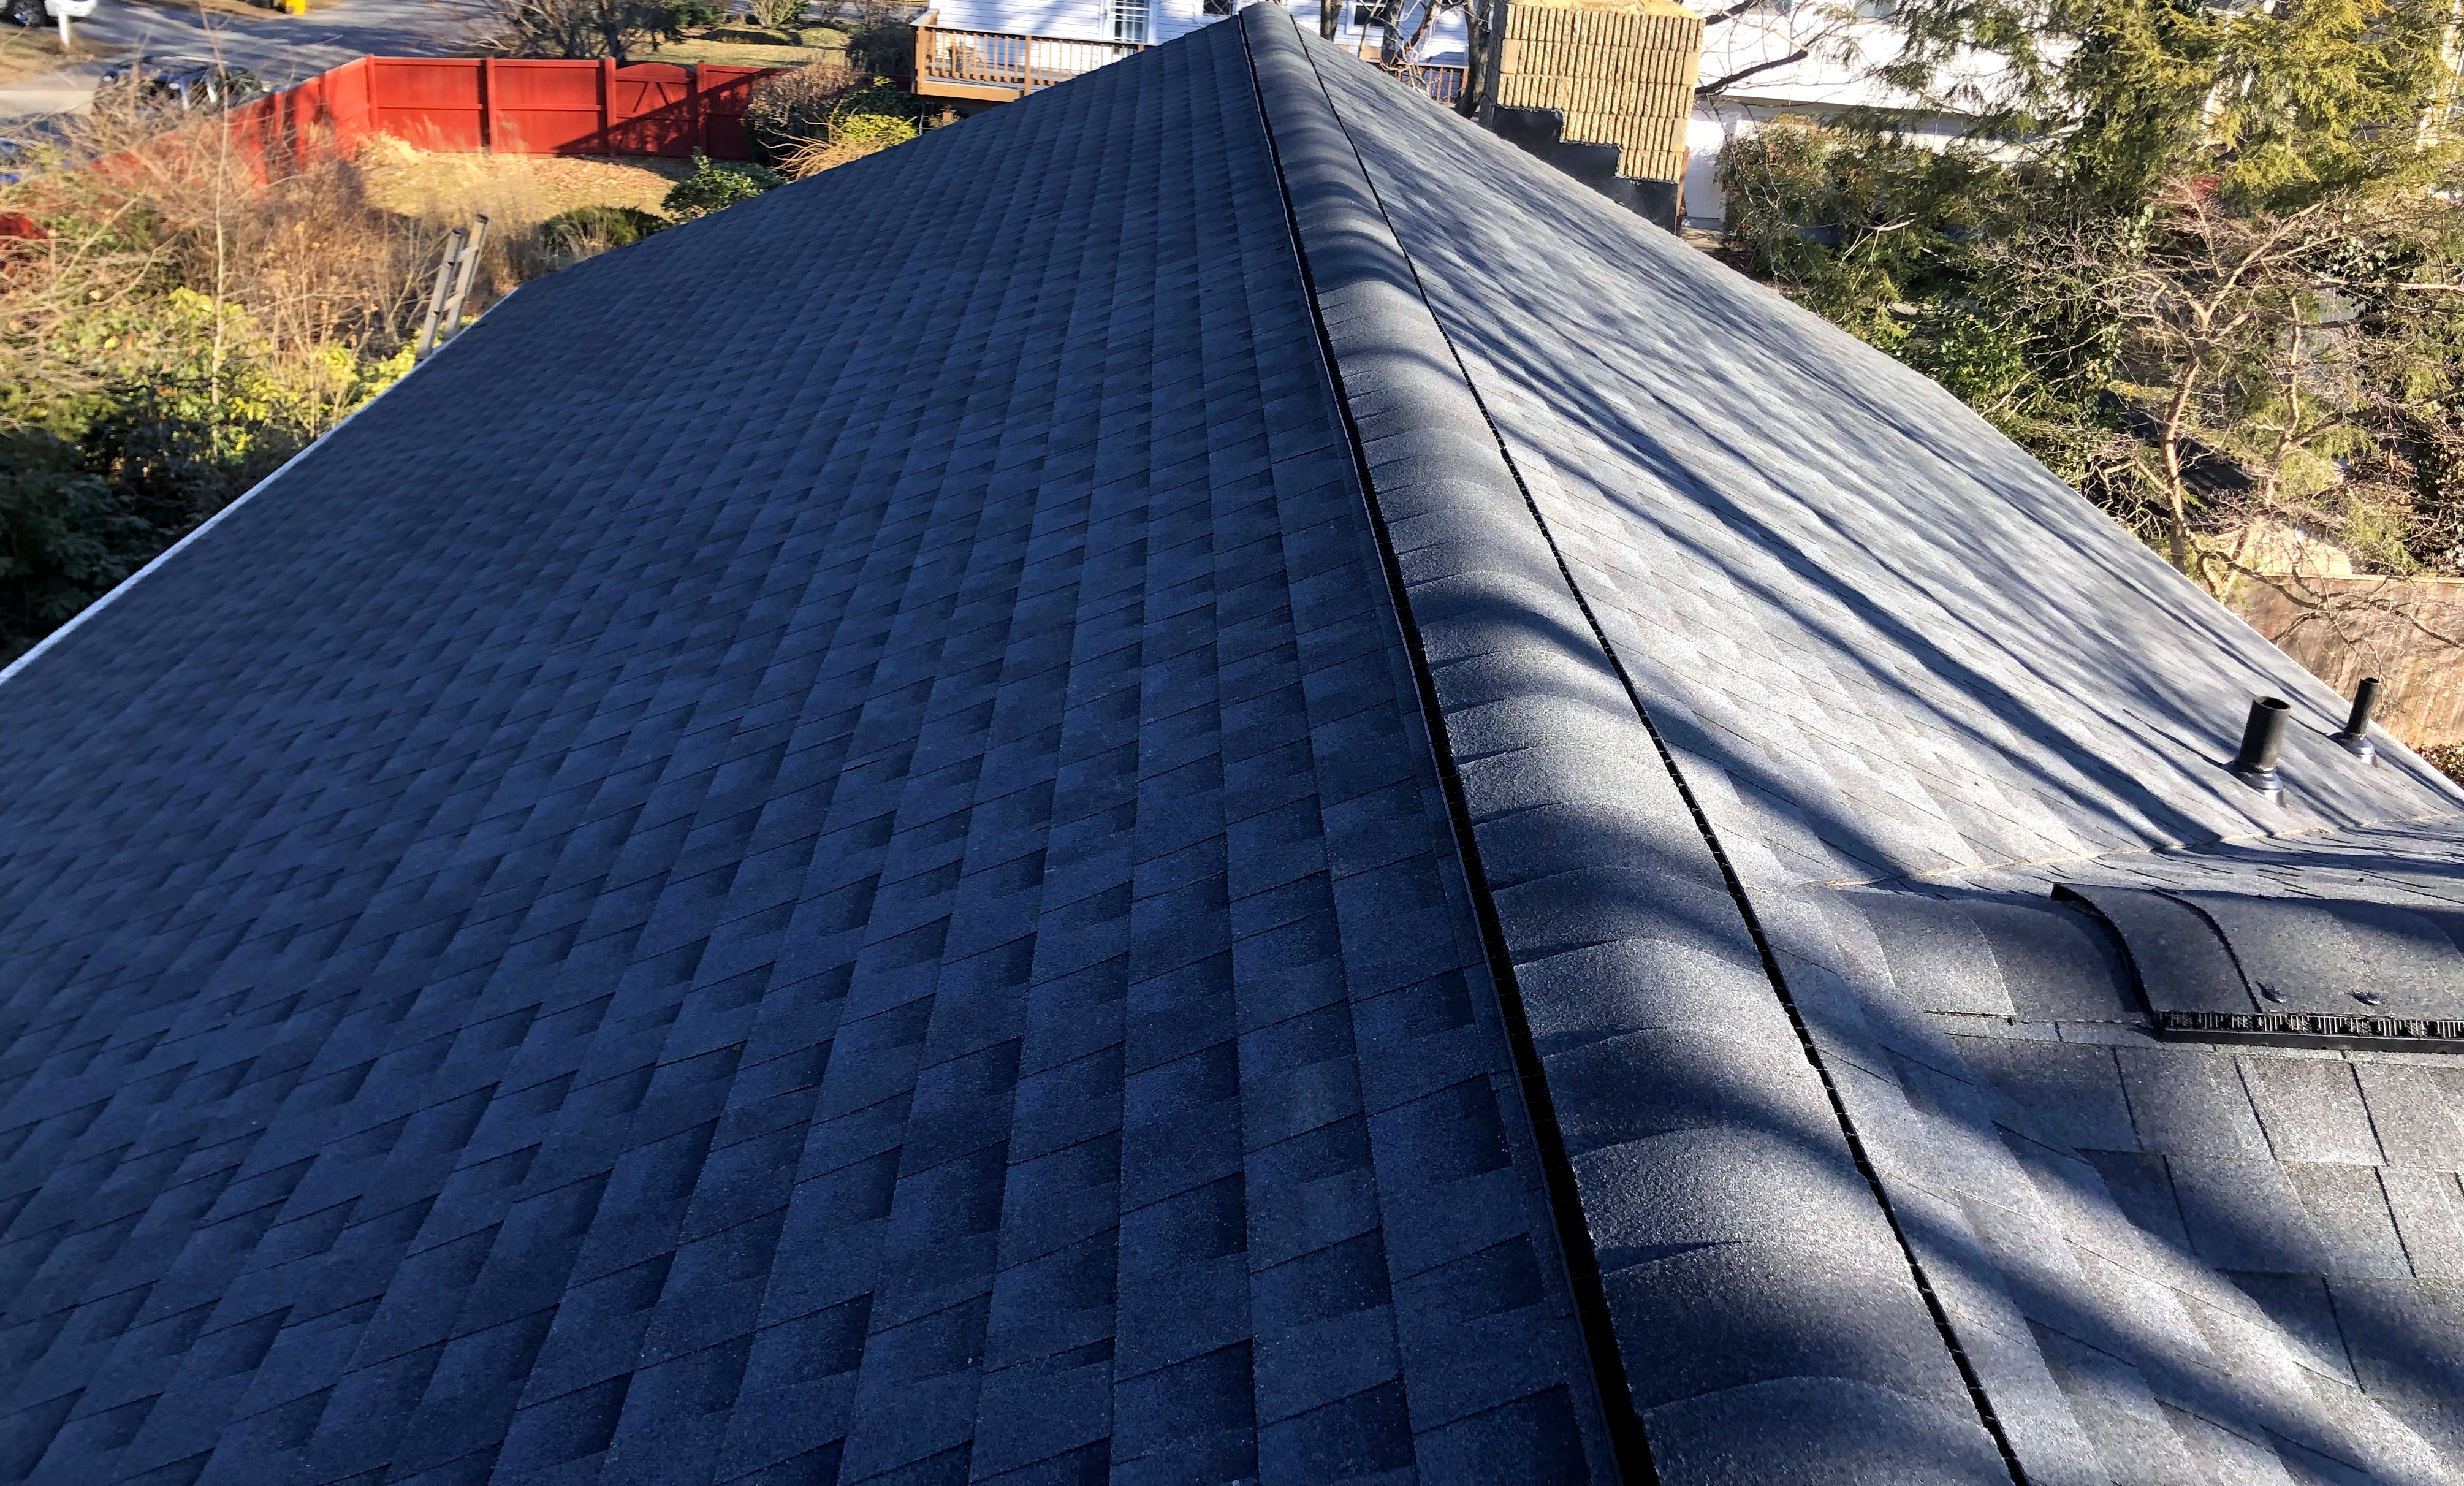 Roofers Linthicum 21090 Linthicum Md 21090 Gutters